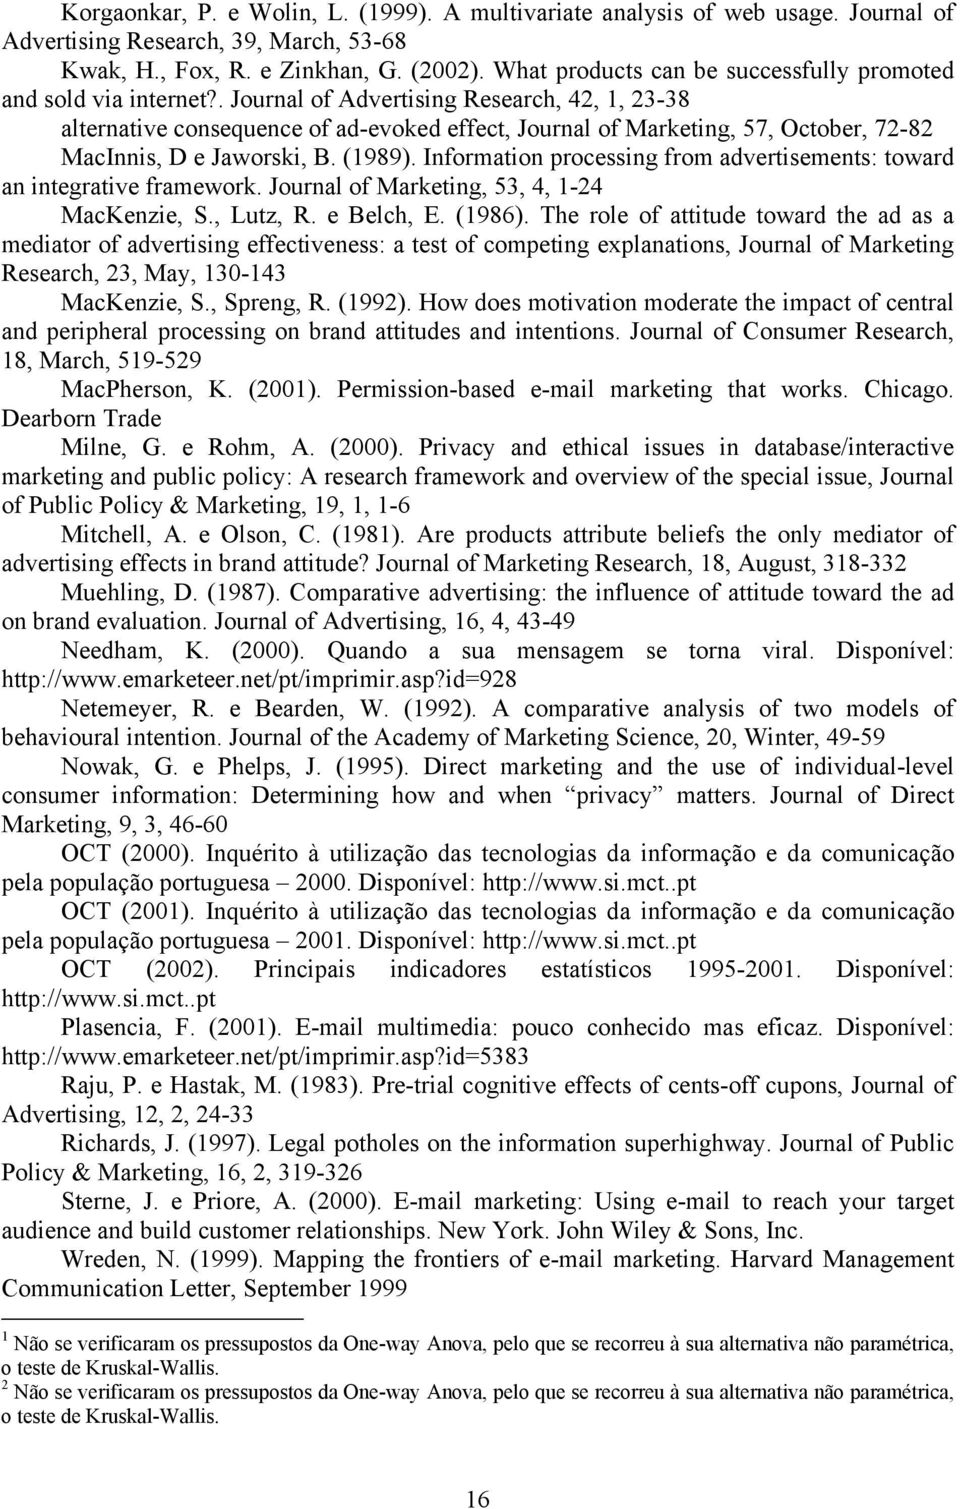 . Journal of Advertising Research, 42, 1, 23-38 alternative consequence of ad-evoked effect, Journal of Marketing, 57, October, 72-82 MacInnis, D e Jaworski, B. (1989).